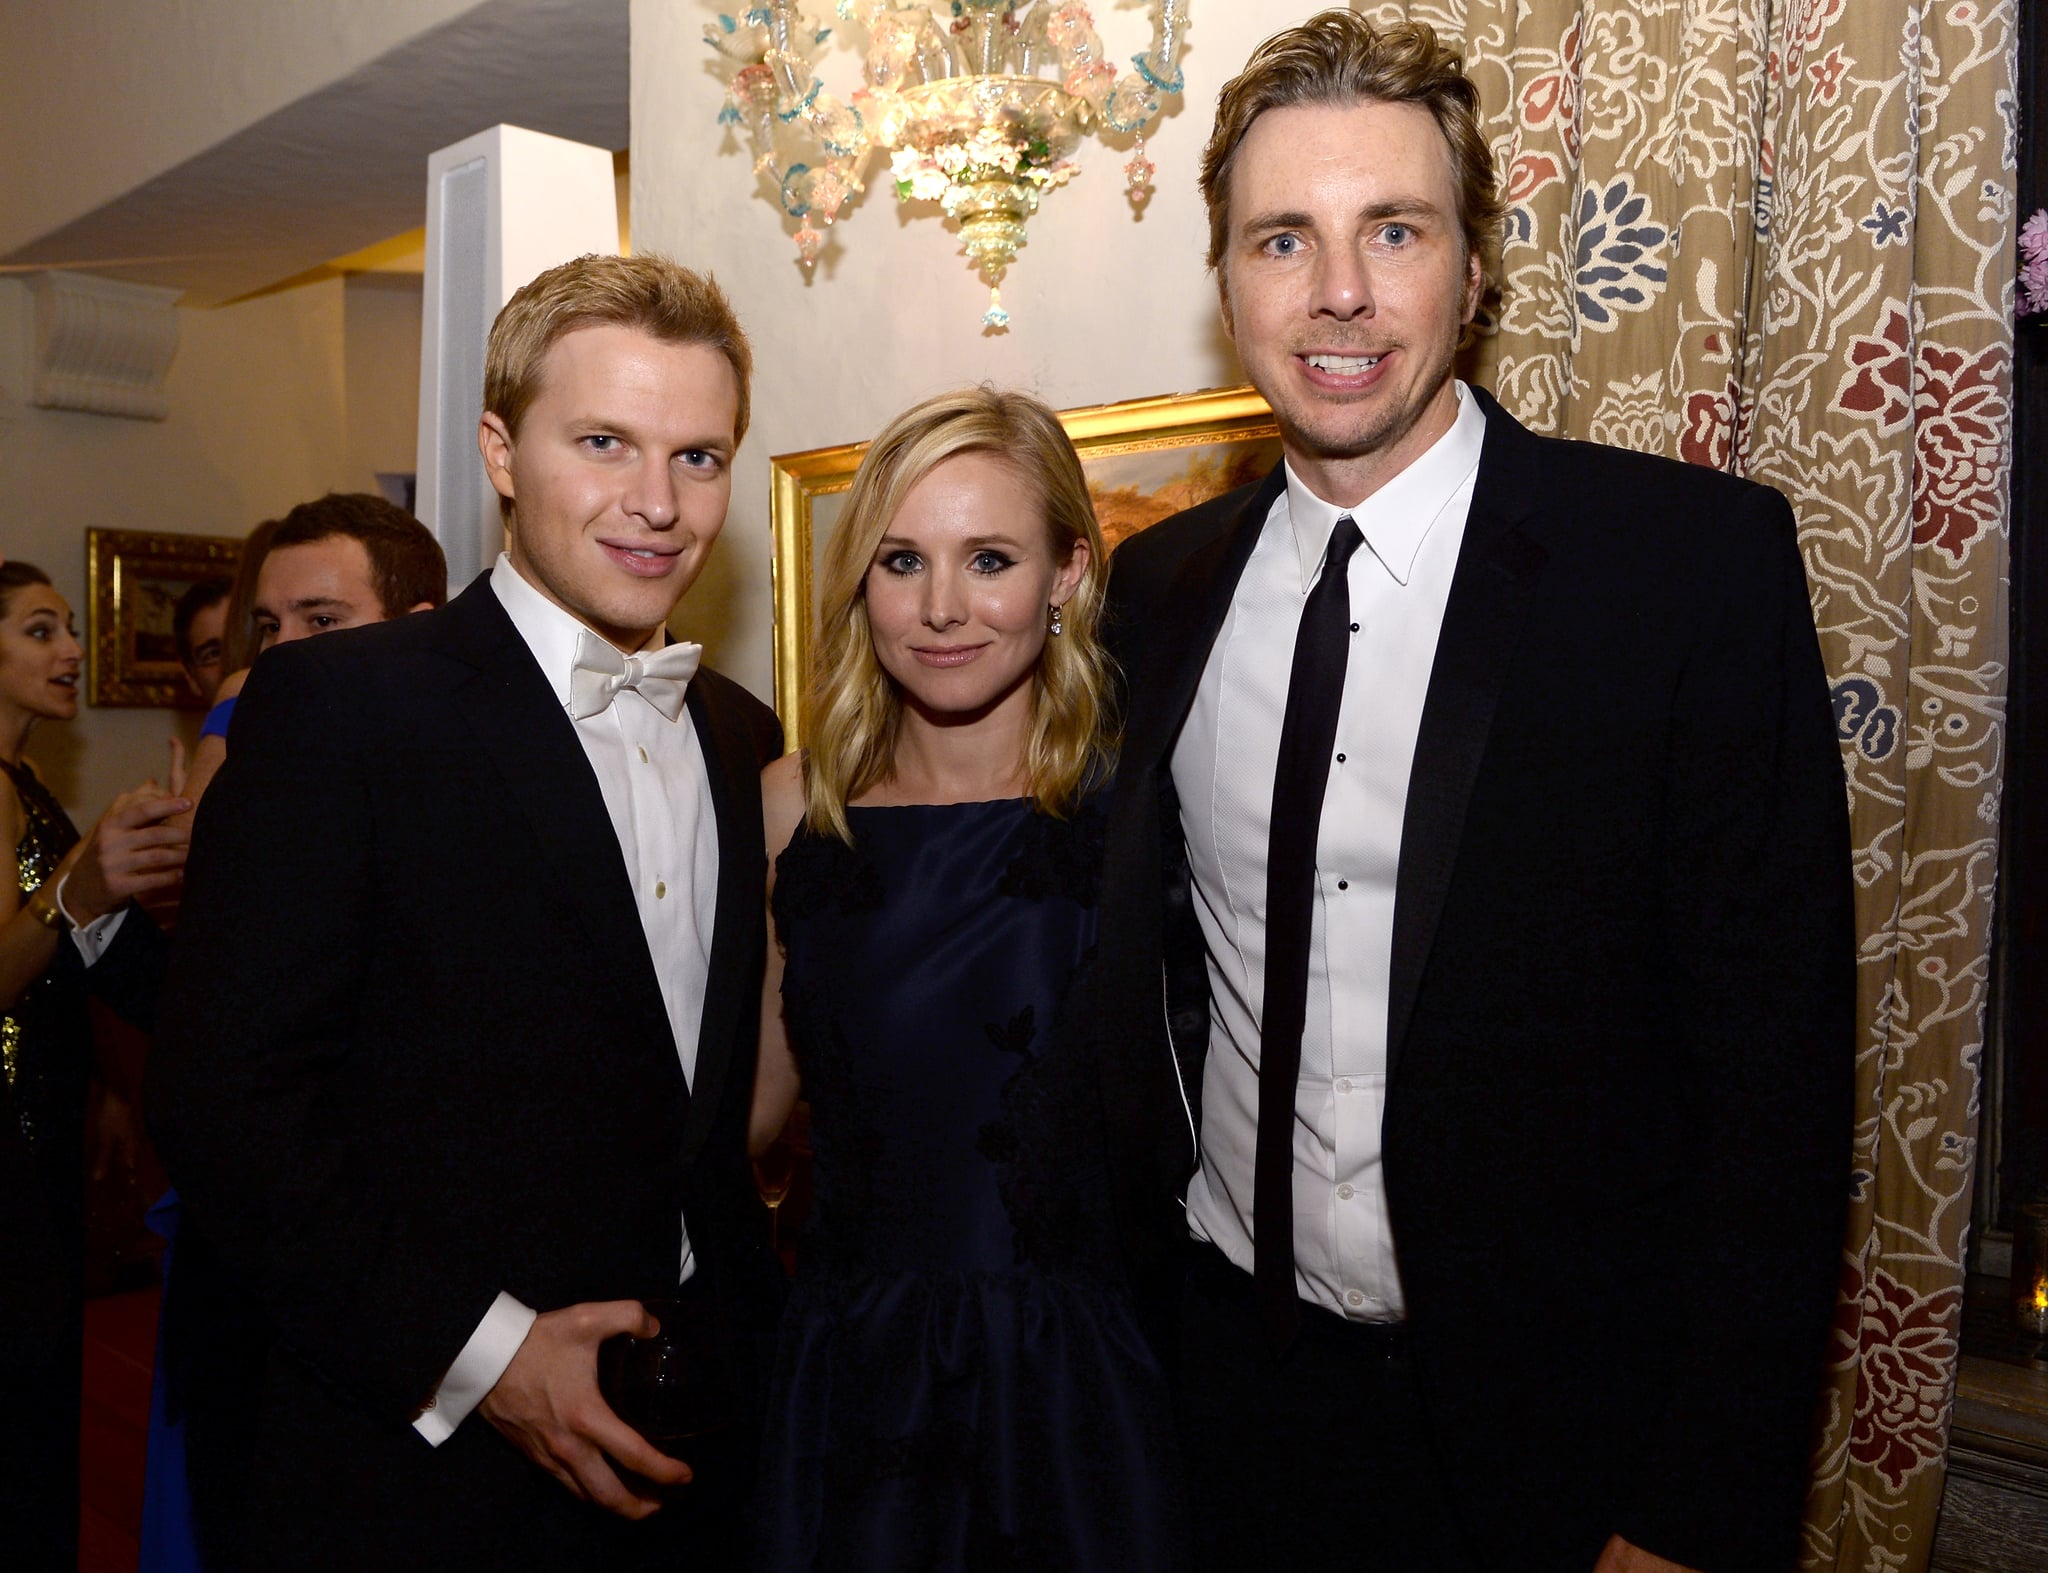 It's a Night of A-List Affairs in America's Capital